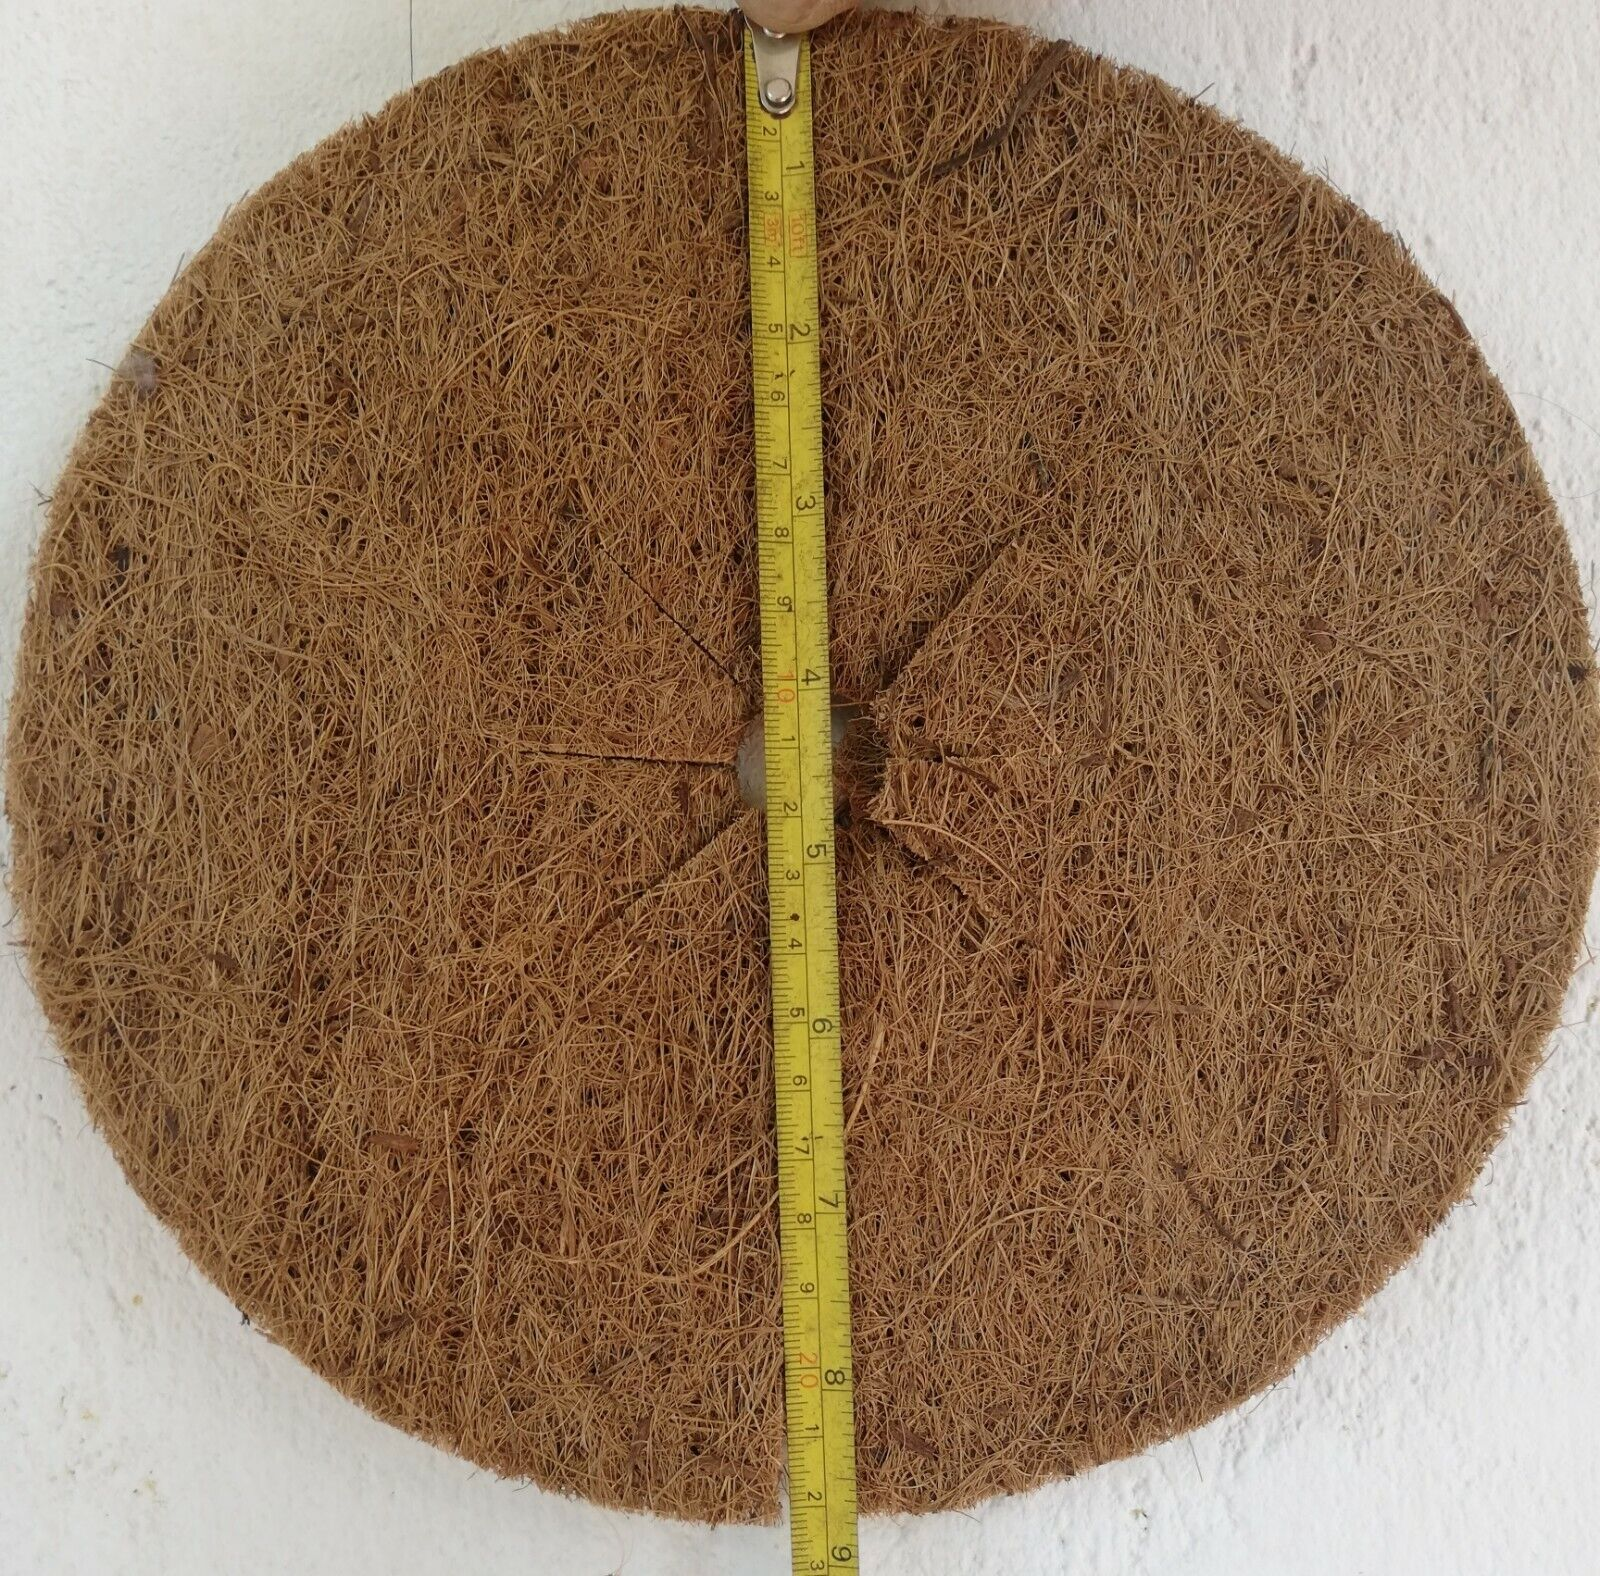 Soil Moisture Retainer Fiber Mat Plant Growth Support Eco Friendly 5Mats at Once